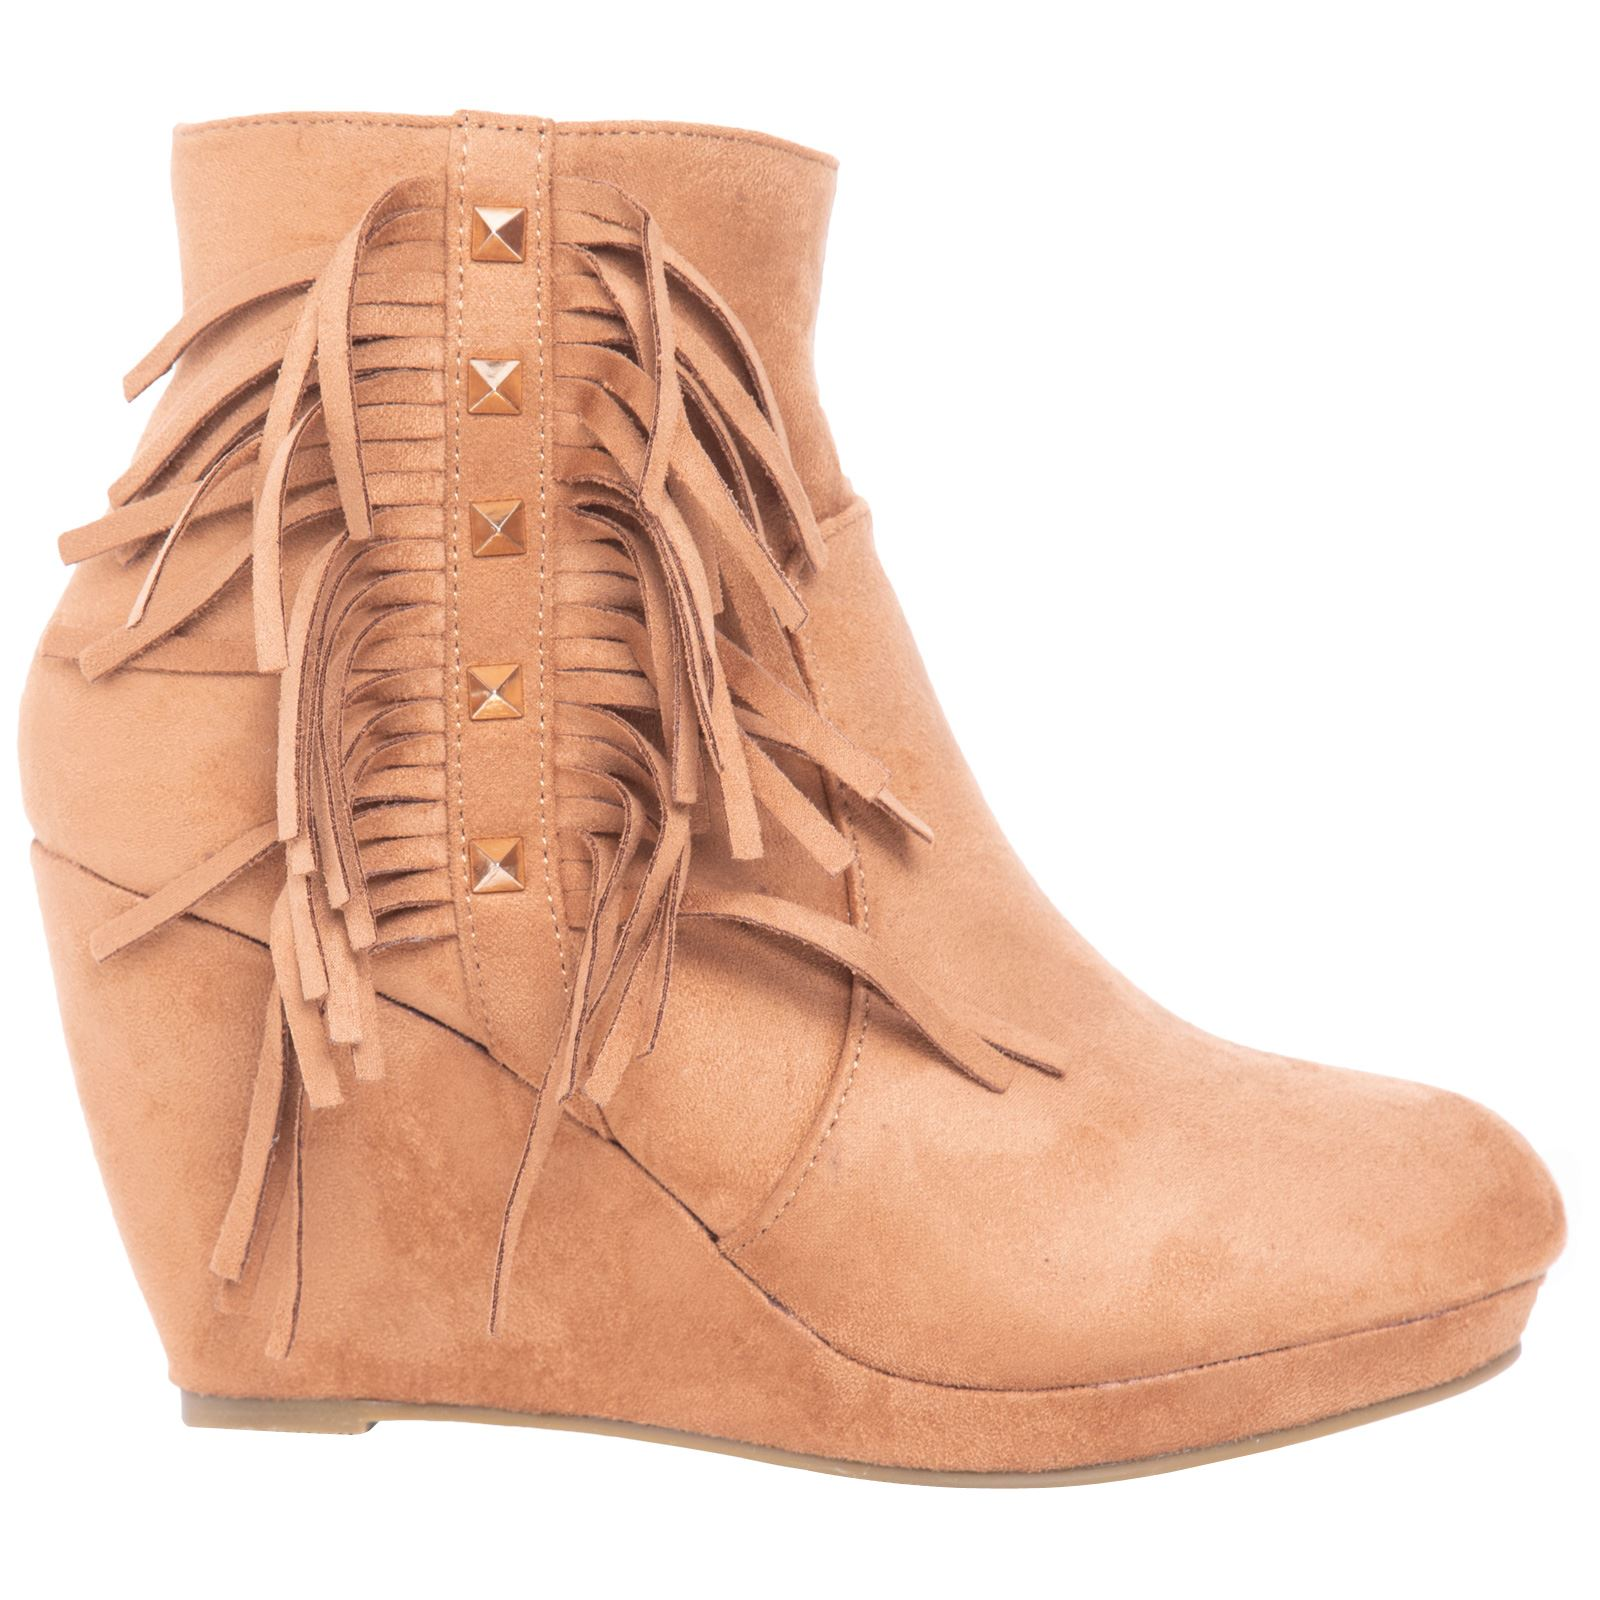 Orabella Womens Low Mid Wedge Heel Lace Up Zip Up Studded Tassles Casual Style